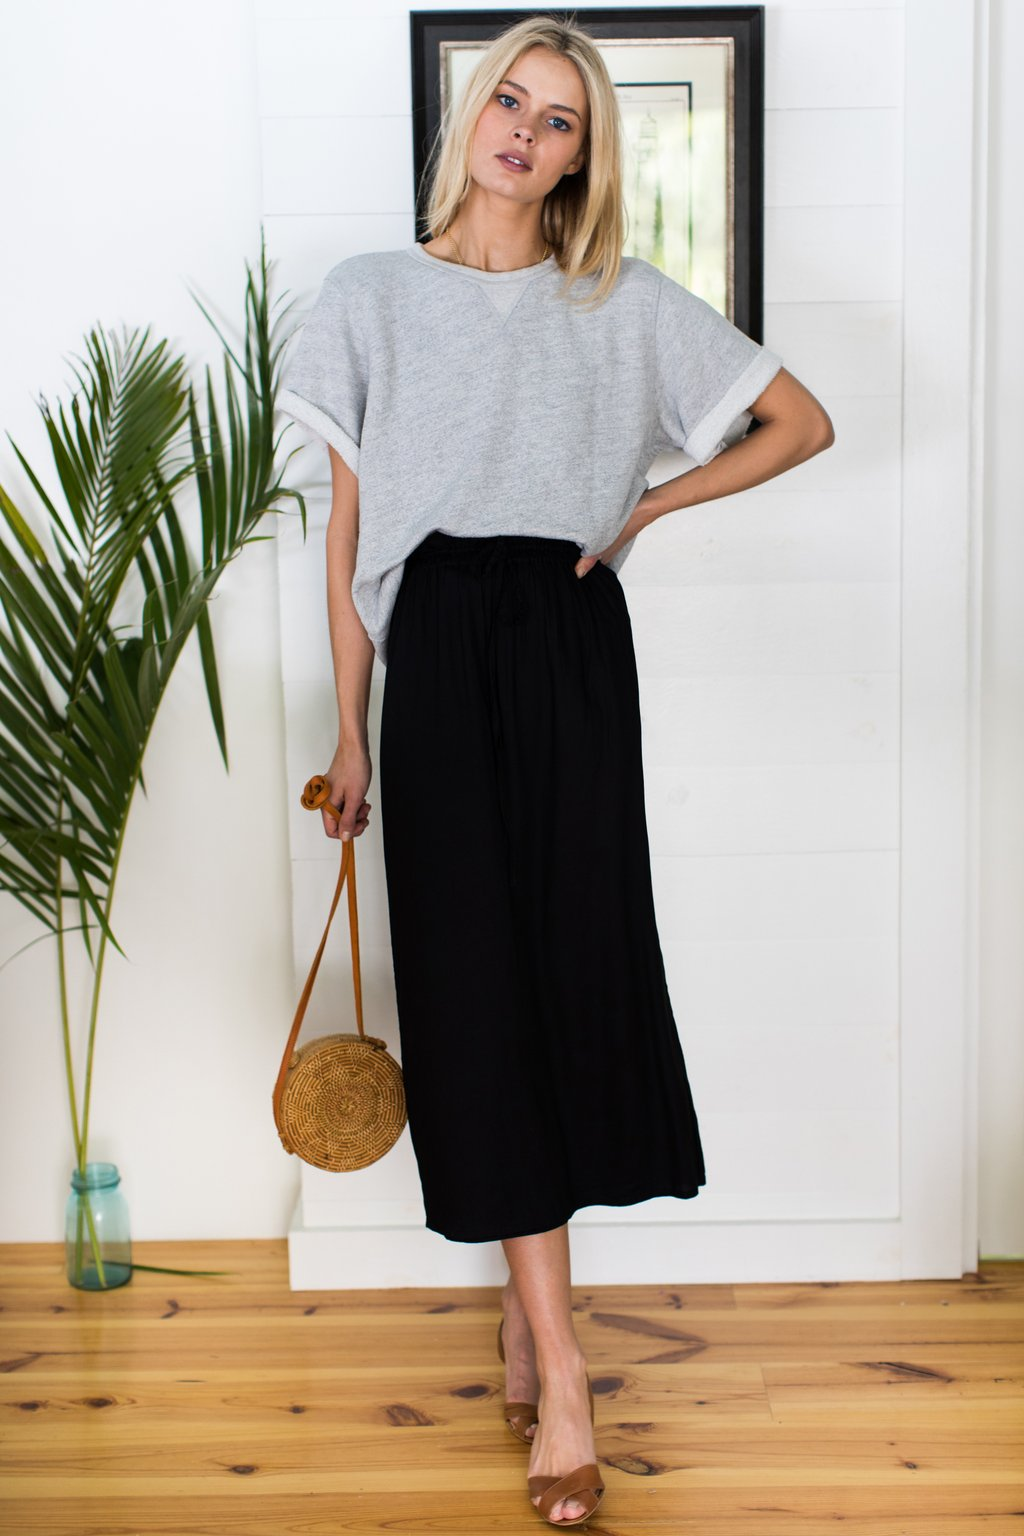 Emerson Fry Drawstring Skirt Black